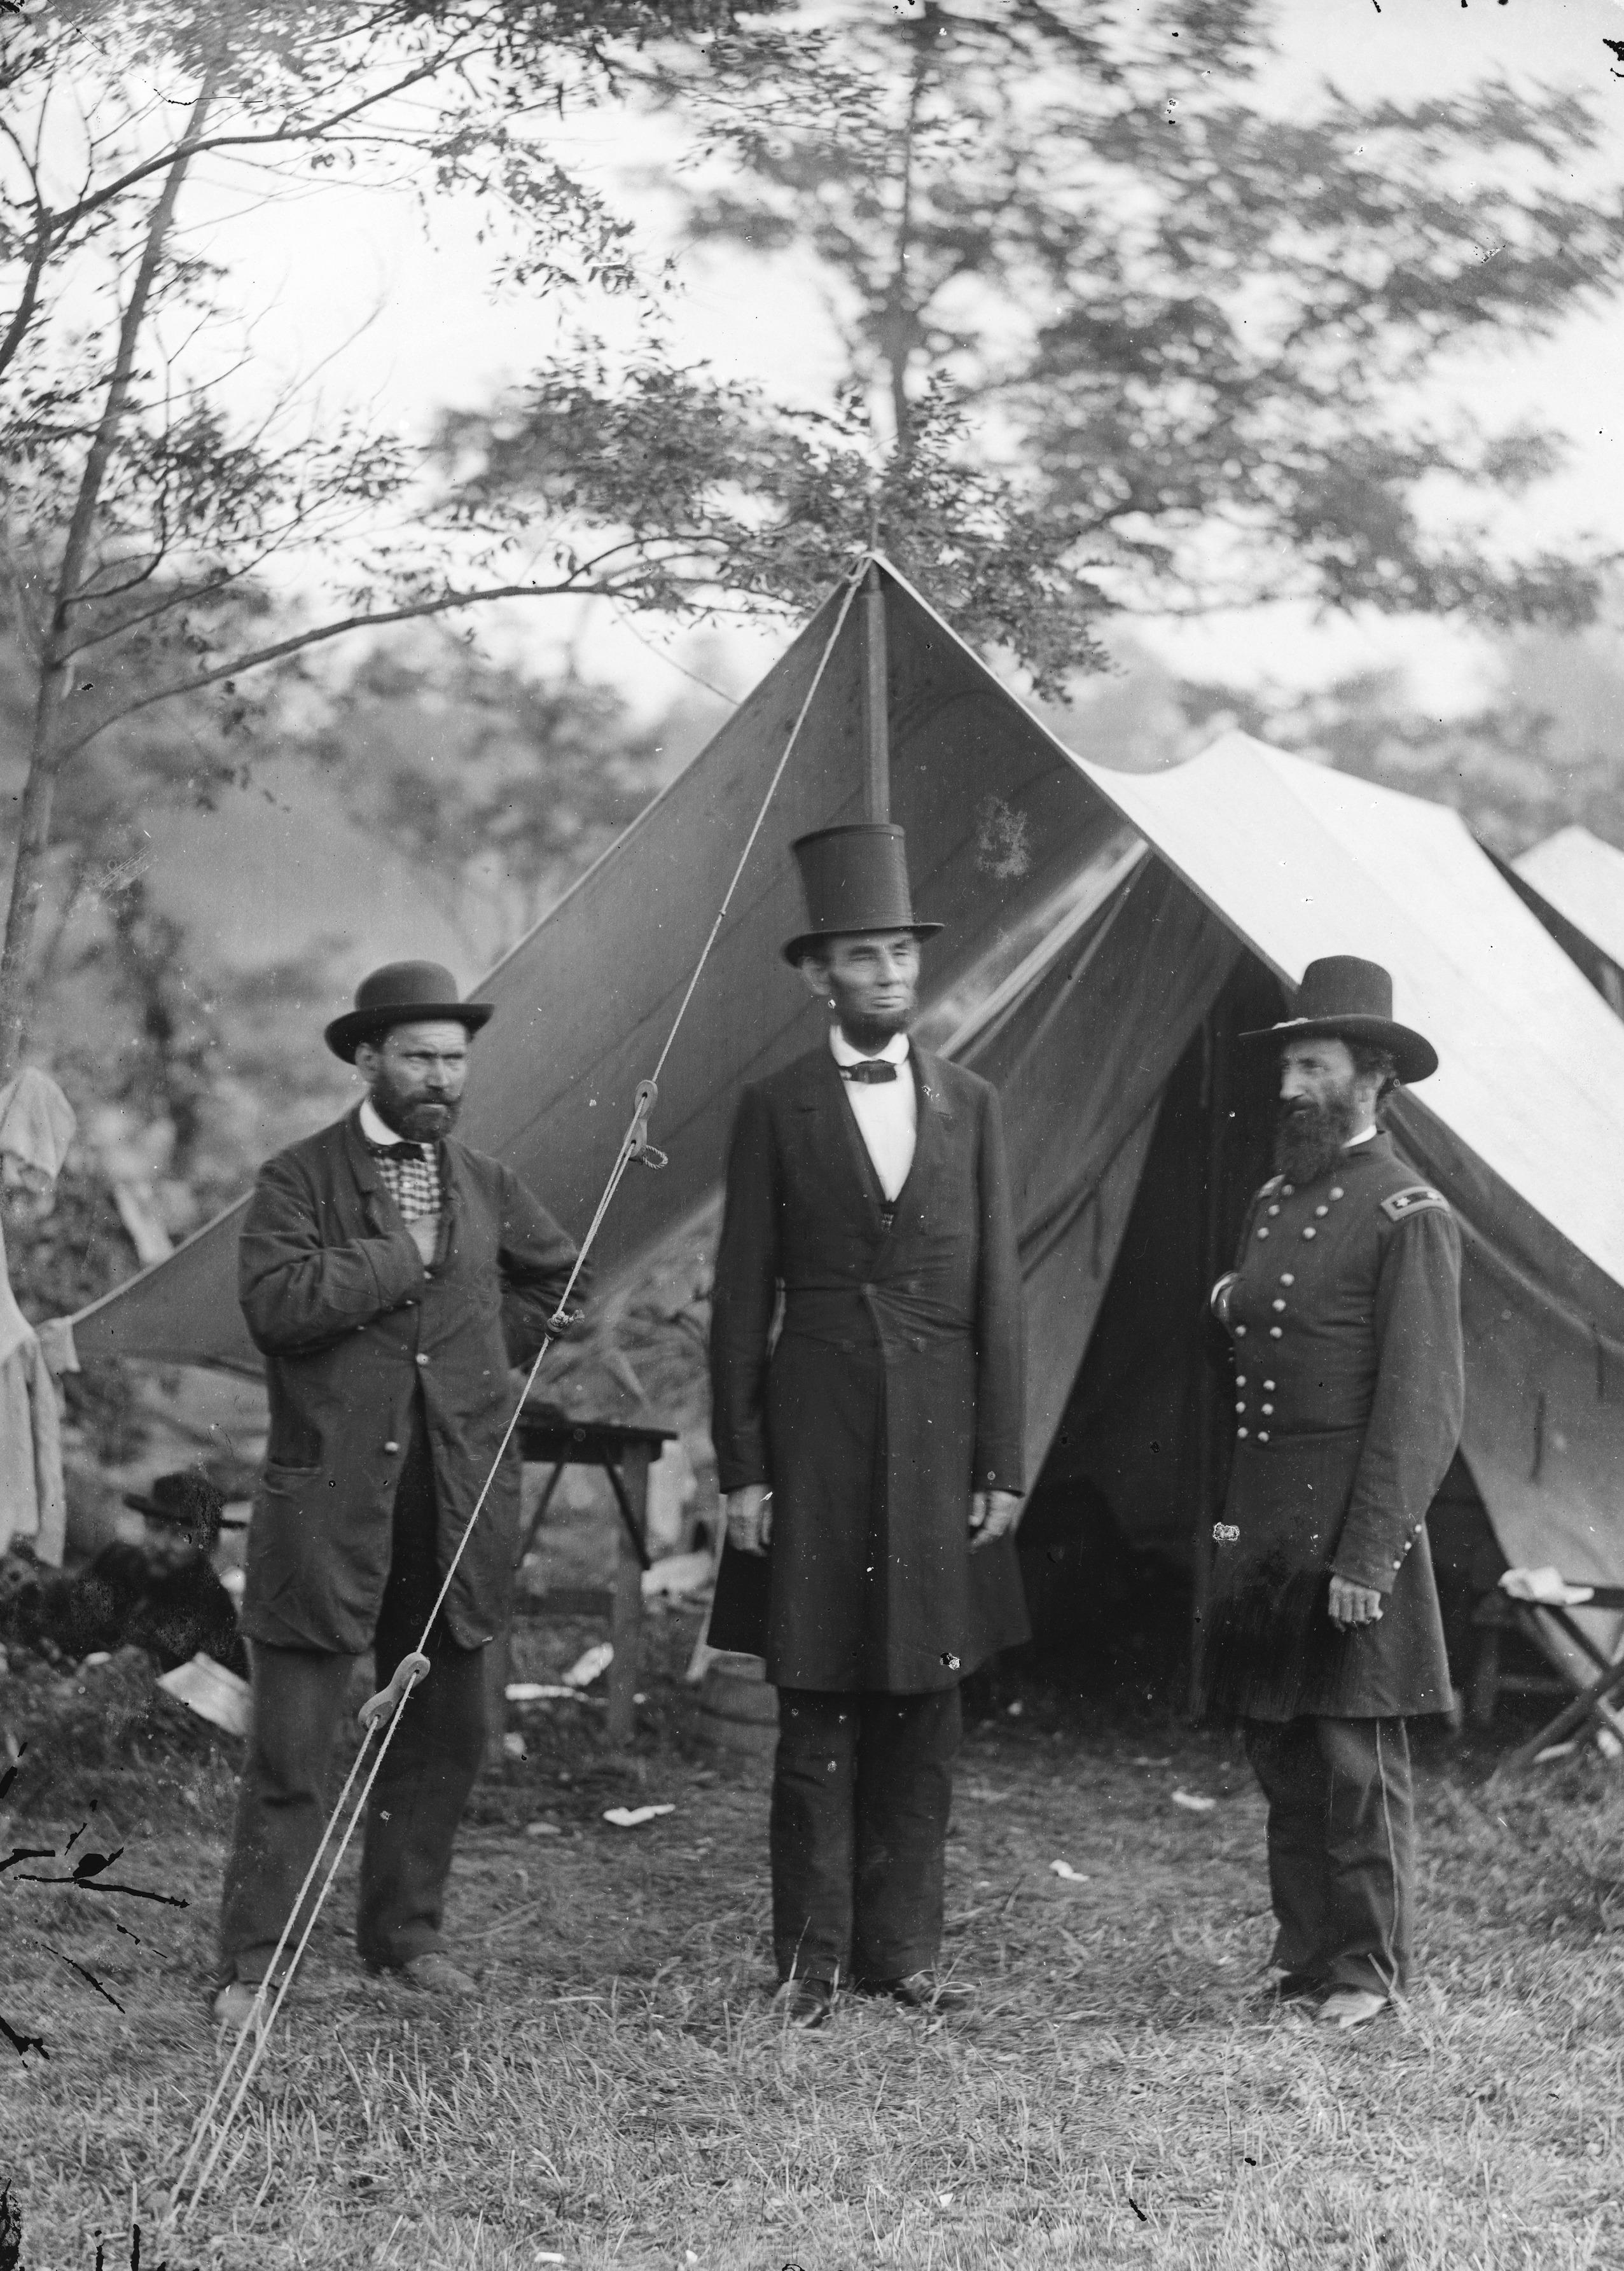 Lincoln, Pinkerton, and McClernand at Antietam, 1862